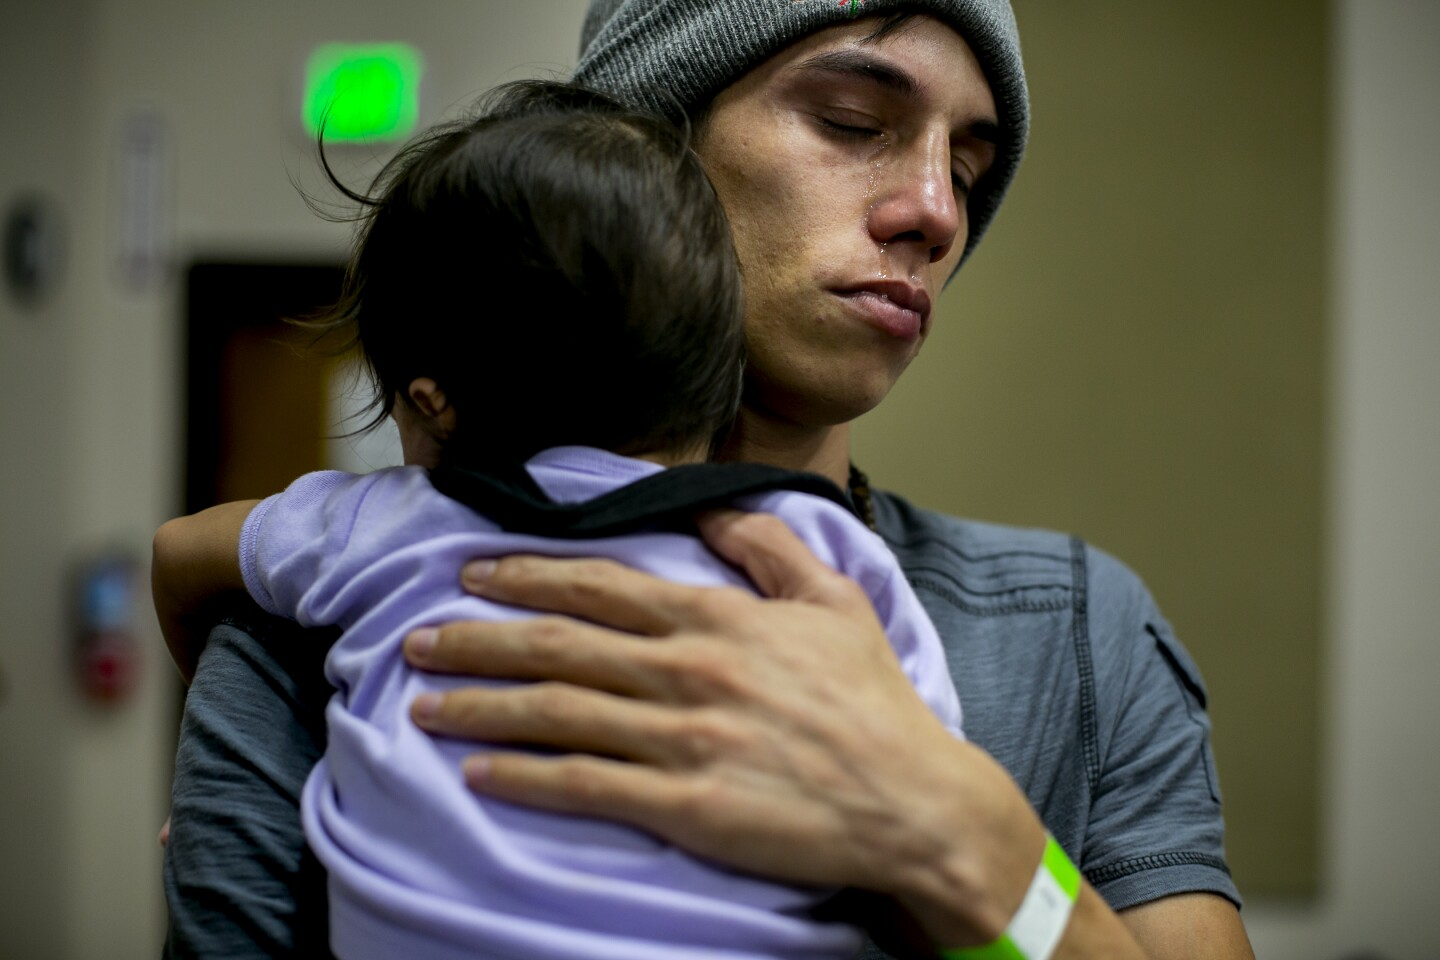 In January, Luis, 21, clutches his one-year-old daughter Grethel as he discusses his trek from Honduras and his escape from violent gangs in his home country while staying at the Rapid Response Network's shelter in San Diego for migrants who were awaiting hearings in the United States.